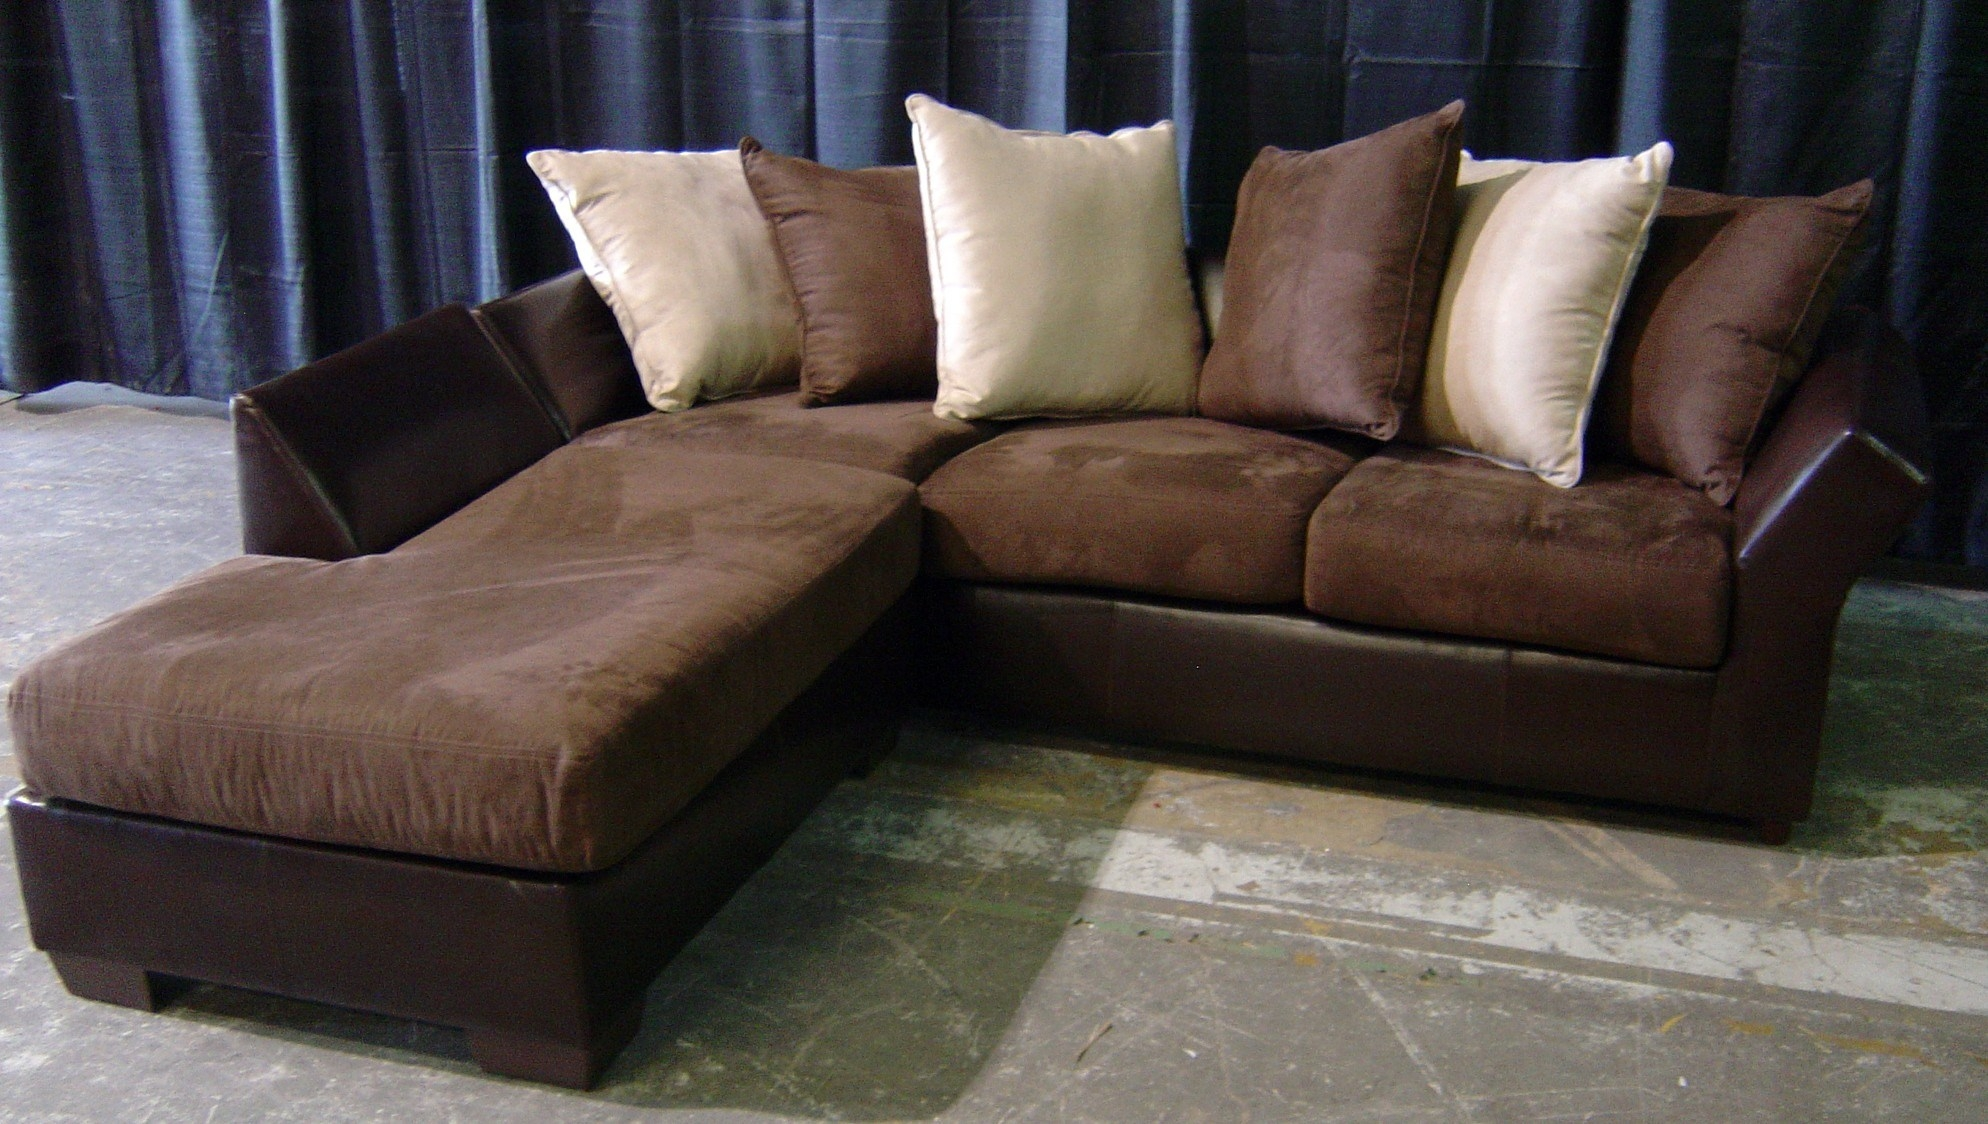 Inspiration about Furniture Brown Leather Sectional Couches Craigslist Missoula Intended For Craigslist Sectional Sofa (# : craigslist sectional couch - Sectionals, Sofas & Couches